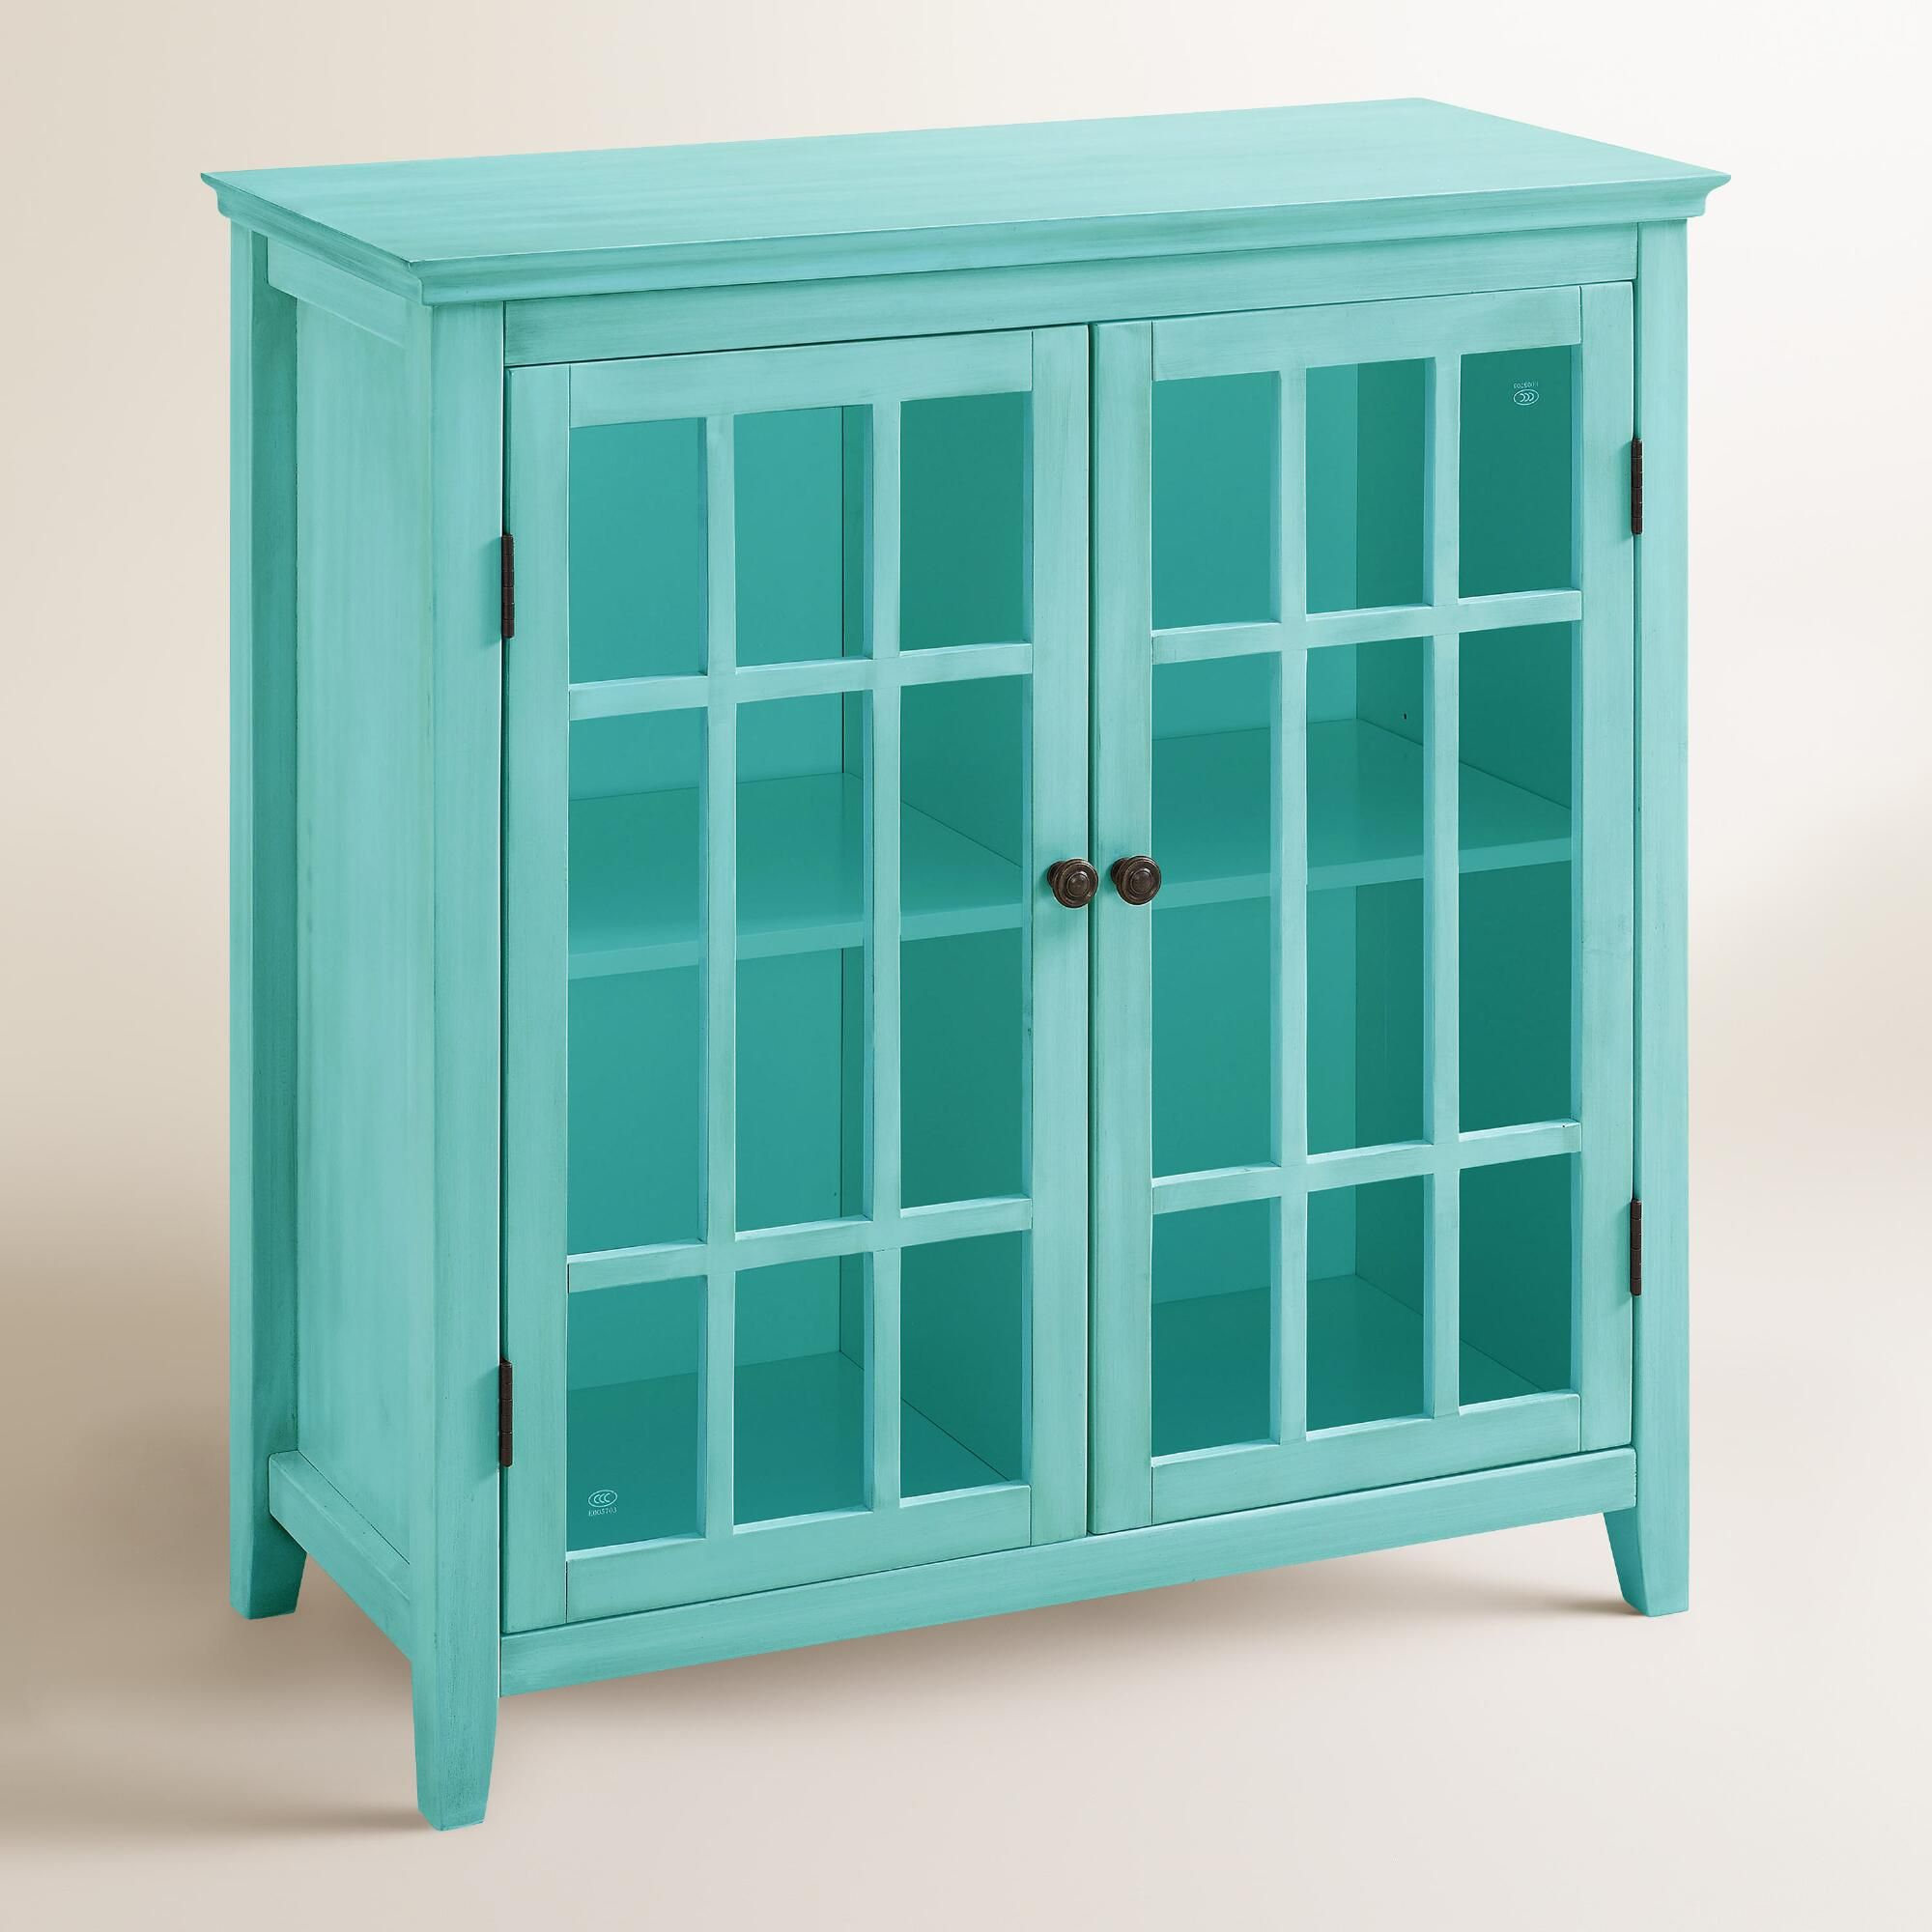 Antique Turquoise Double Door Storage Cabinet Contemporary Media